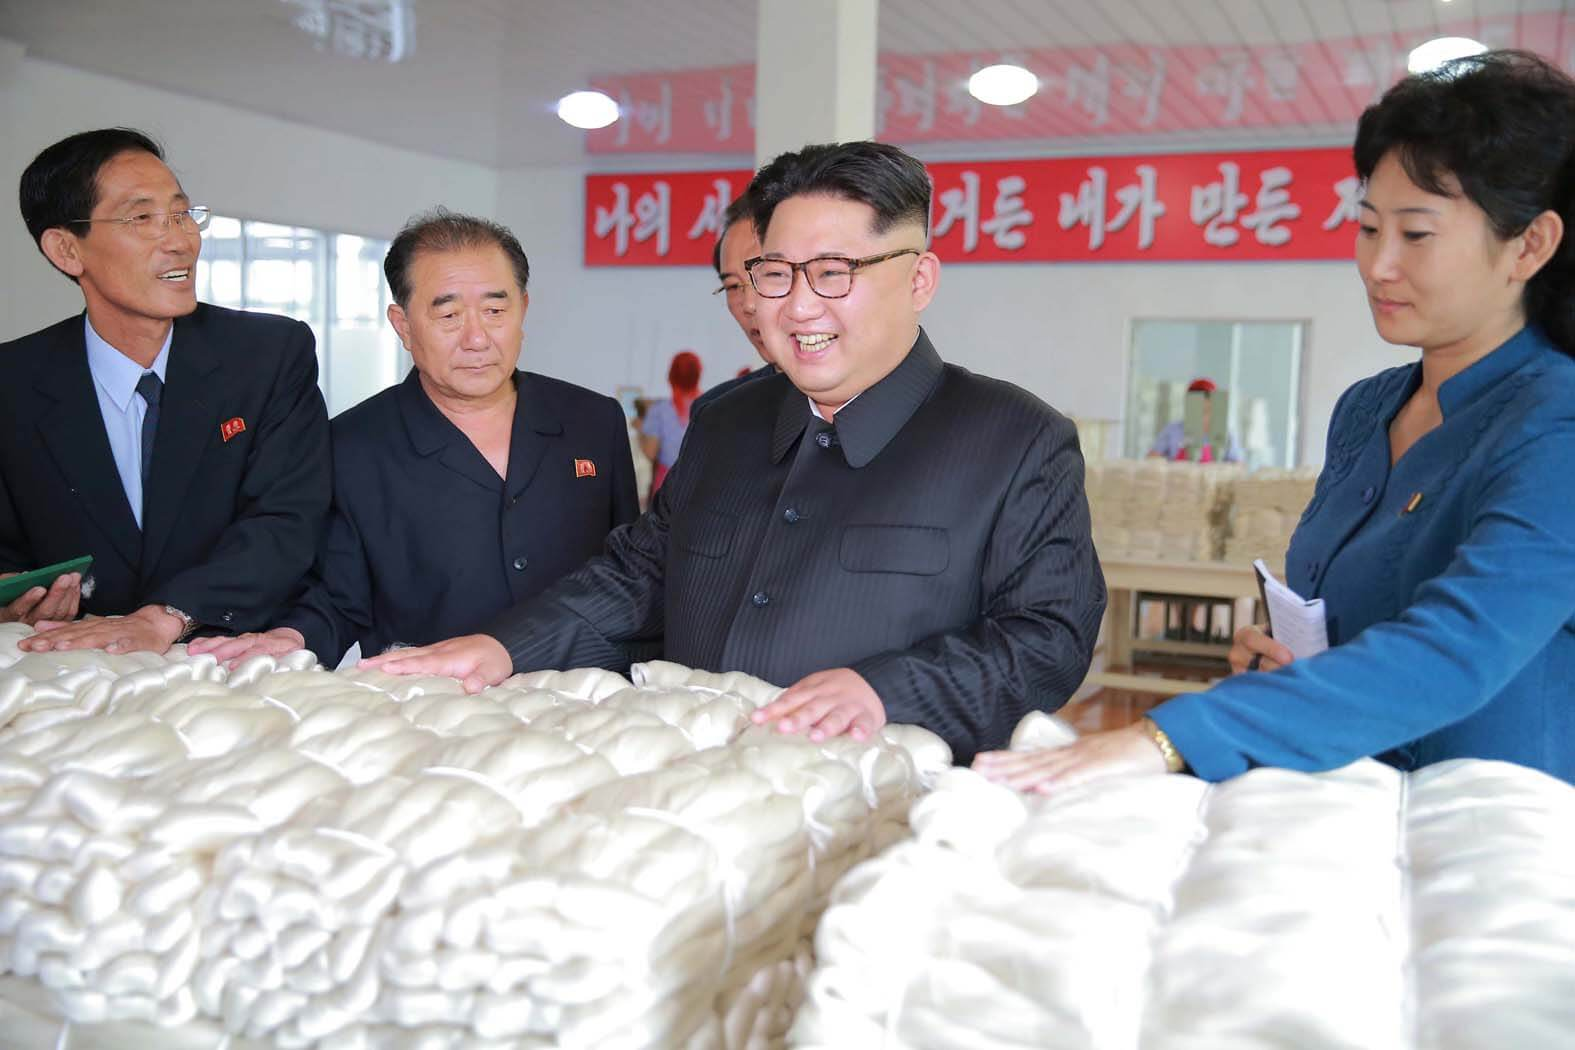 Kim Jong Un visiting the Pyongyang Kim Jong Suk Silk Mill in June 2016